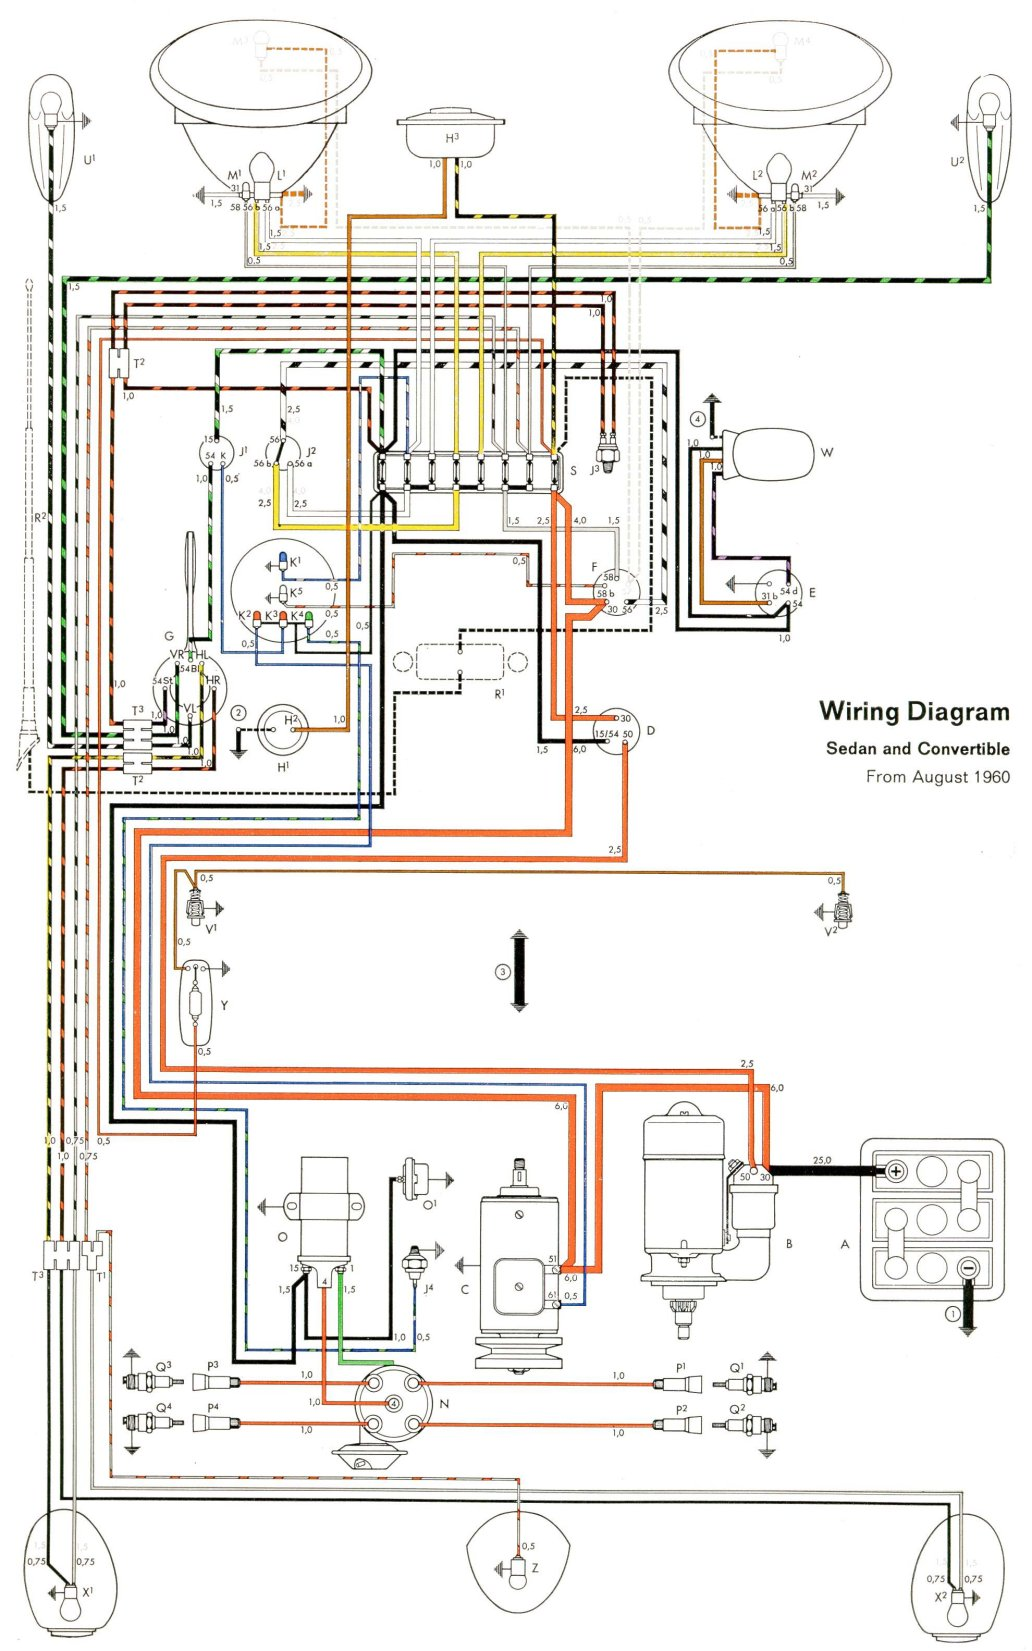 bug_61 thesamba com type 1 wiring diagrams vw beetle wiring diagram at cos-gaming.co